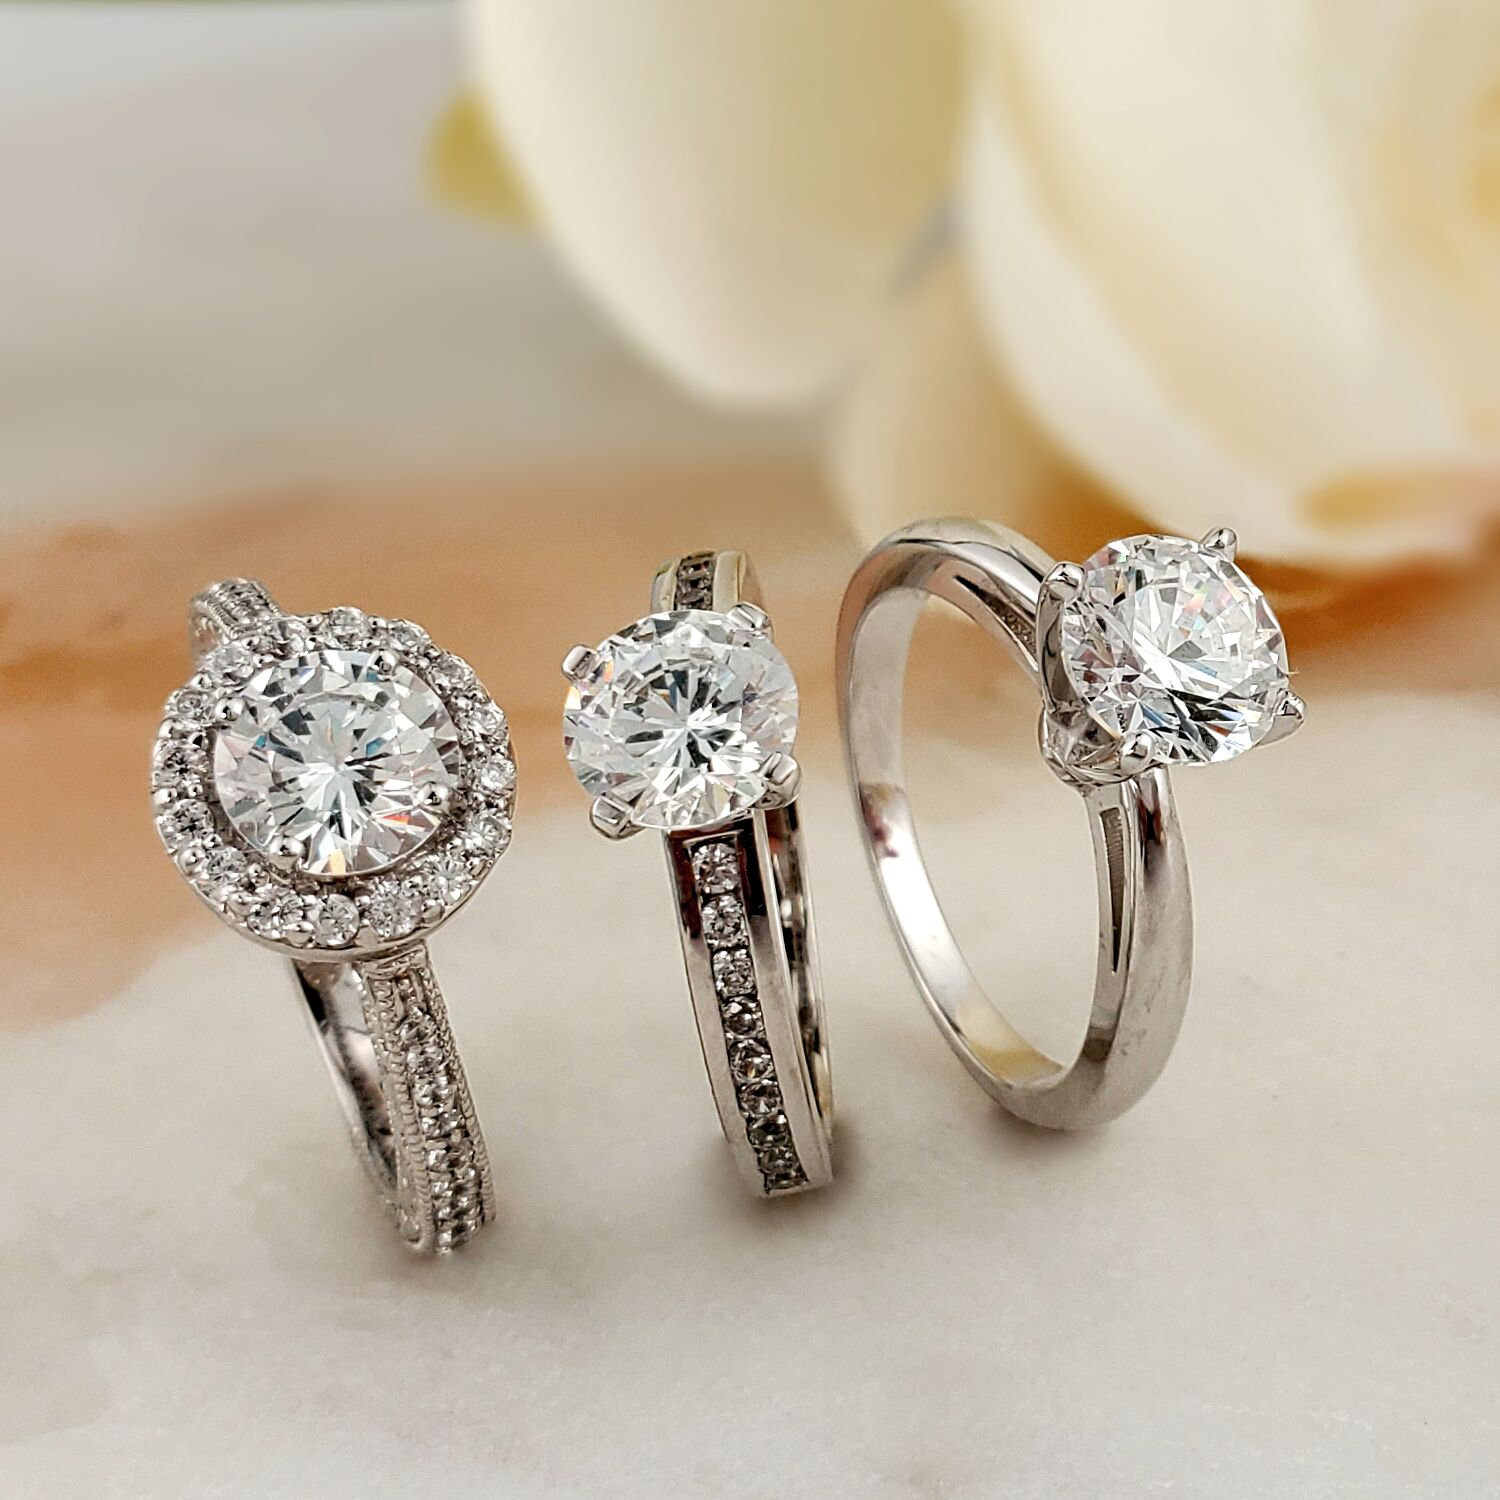 Engagement Ring Styles Through the Years